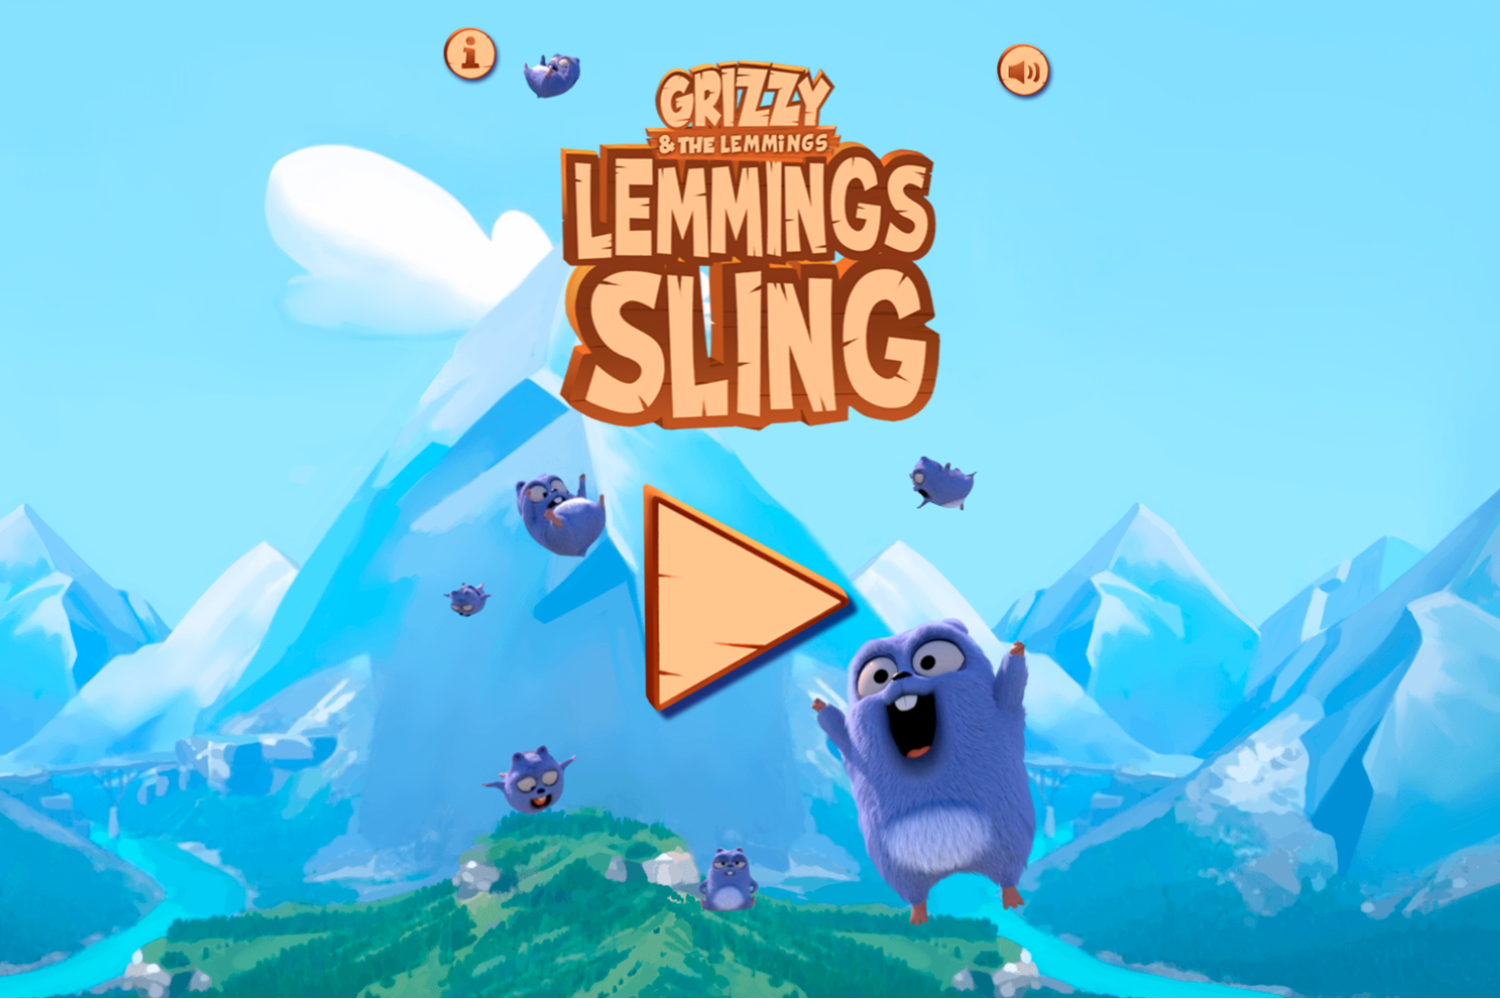 Grizzy and the Lemmings Lemmings Sling Game Welcome Screen Screenshot.